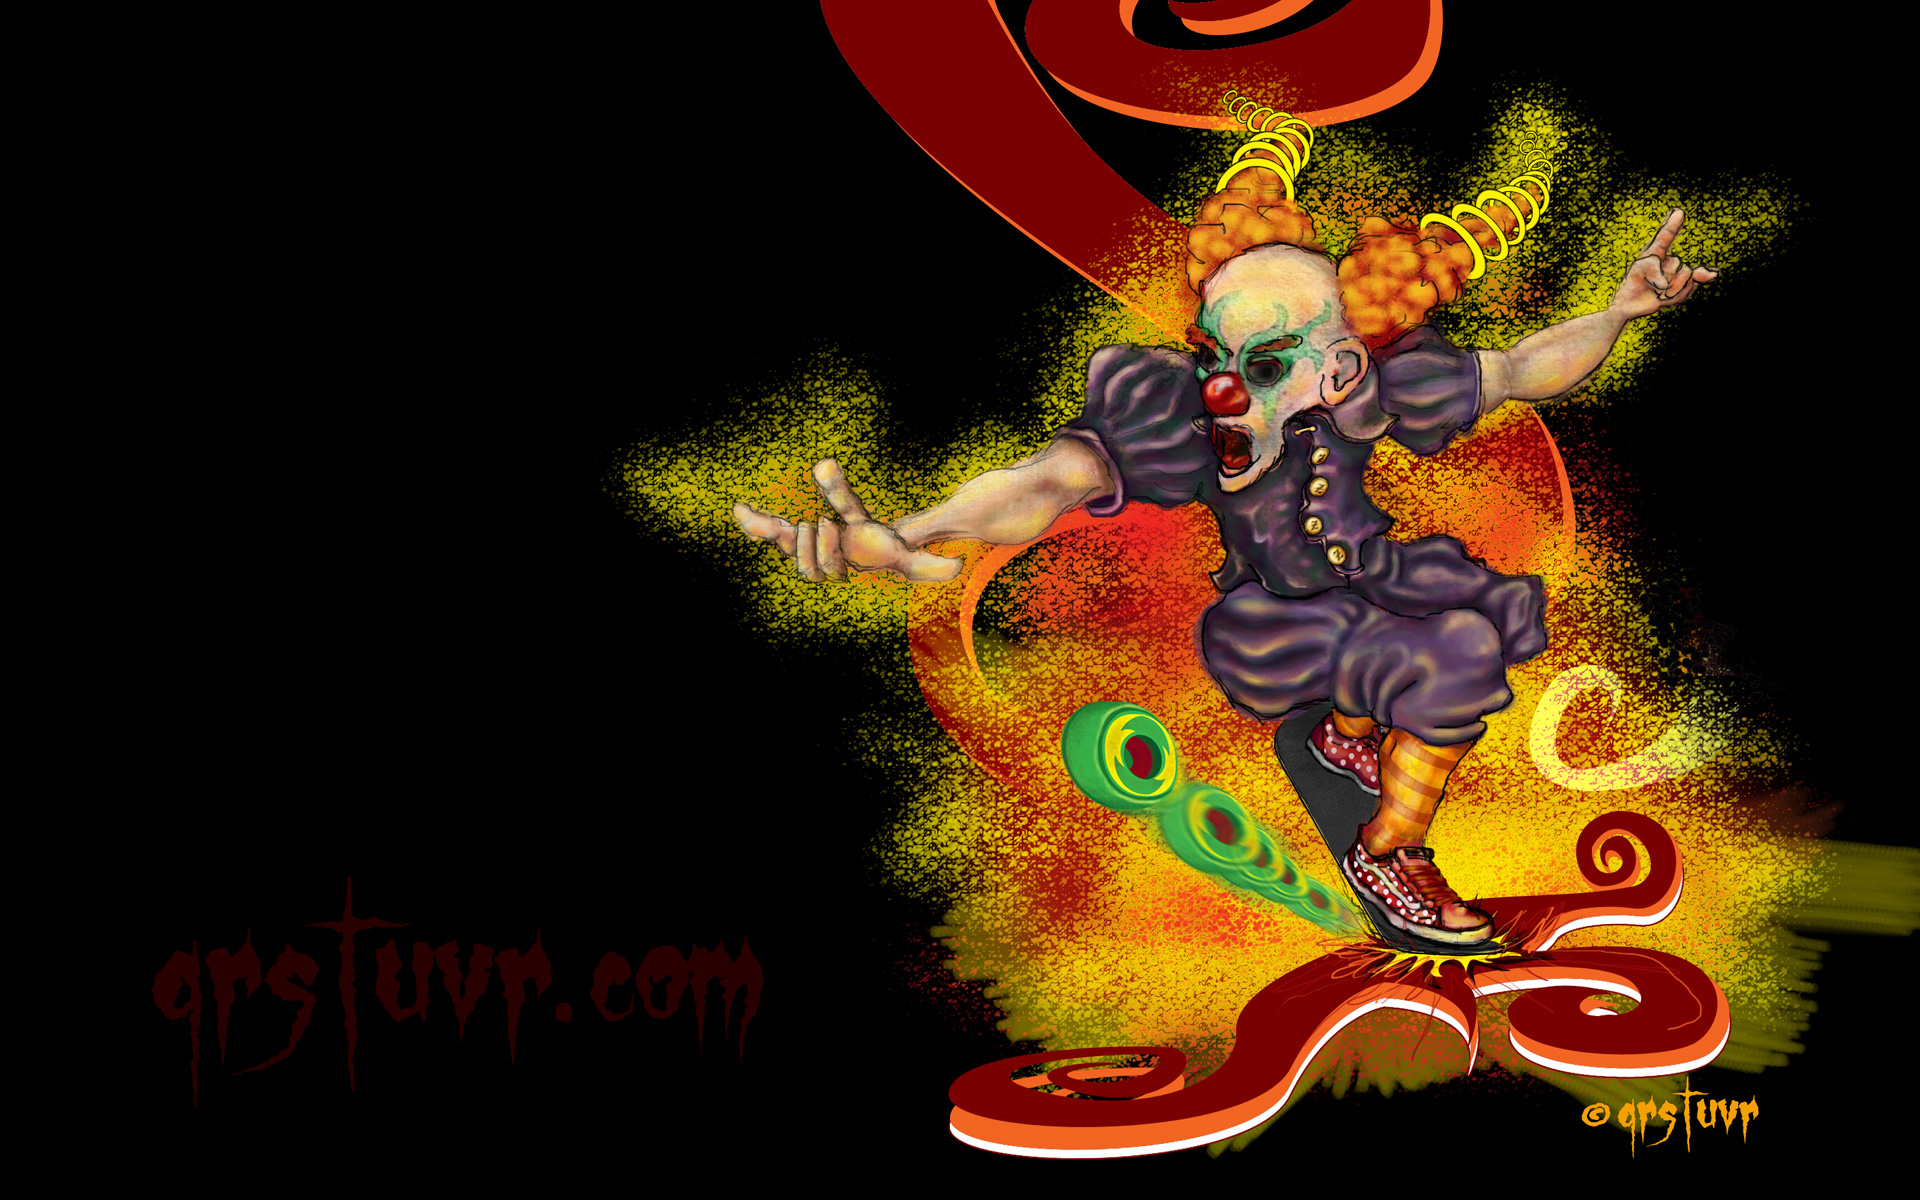 skate wallpaper clown art qrstuvr 1920x1200